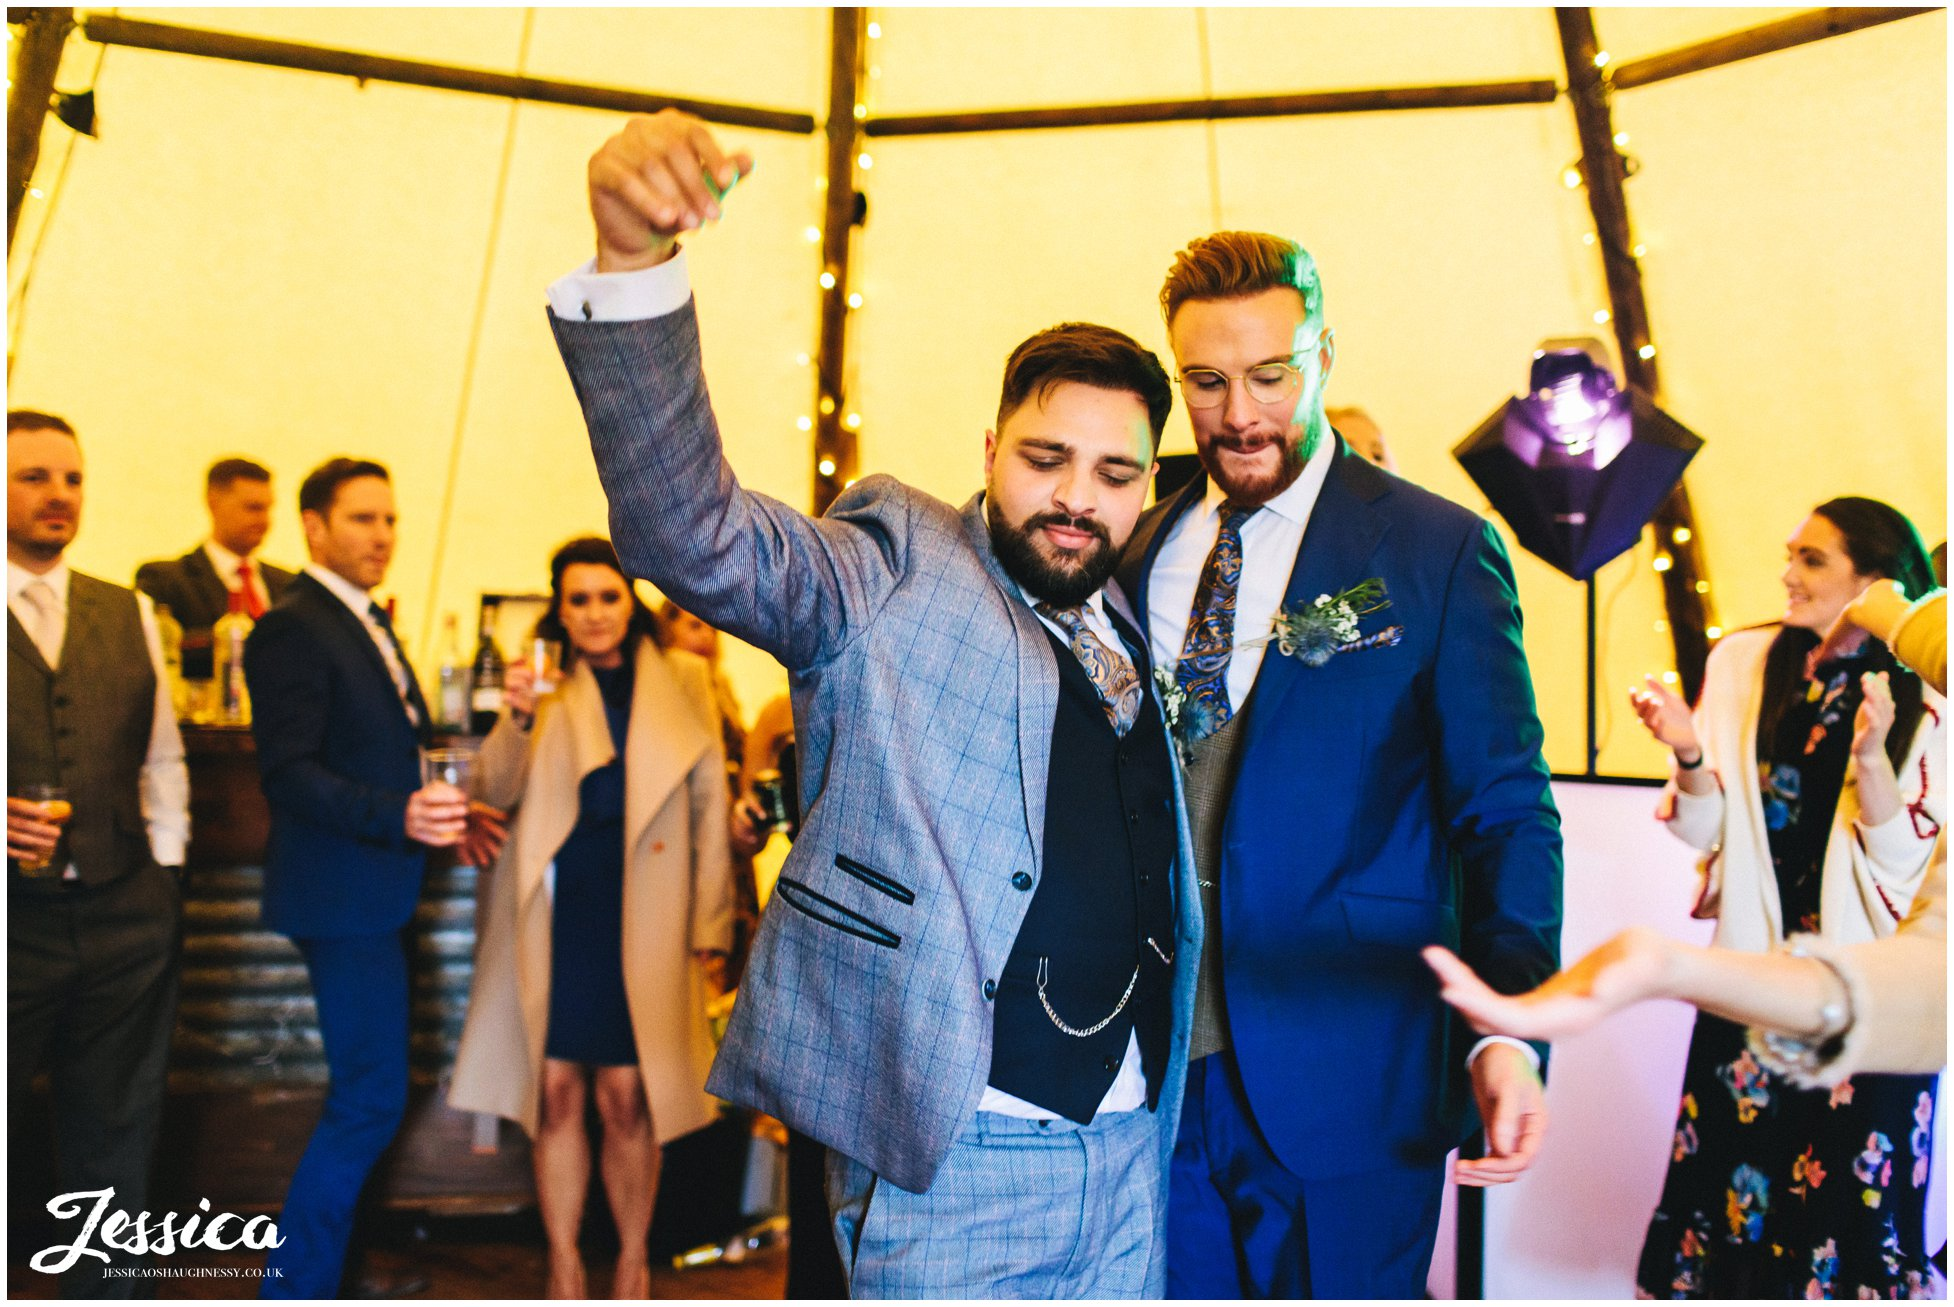 the grooms dance in the tipi as guests cheer them on